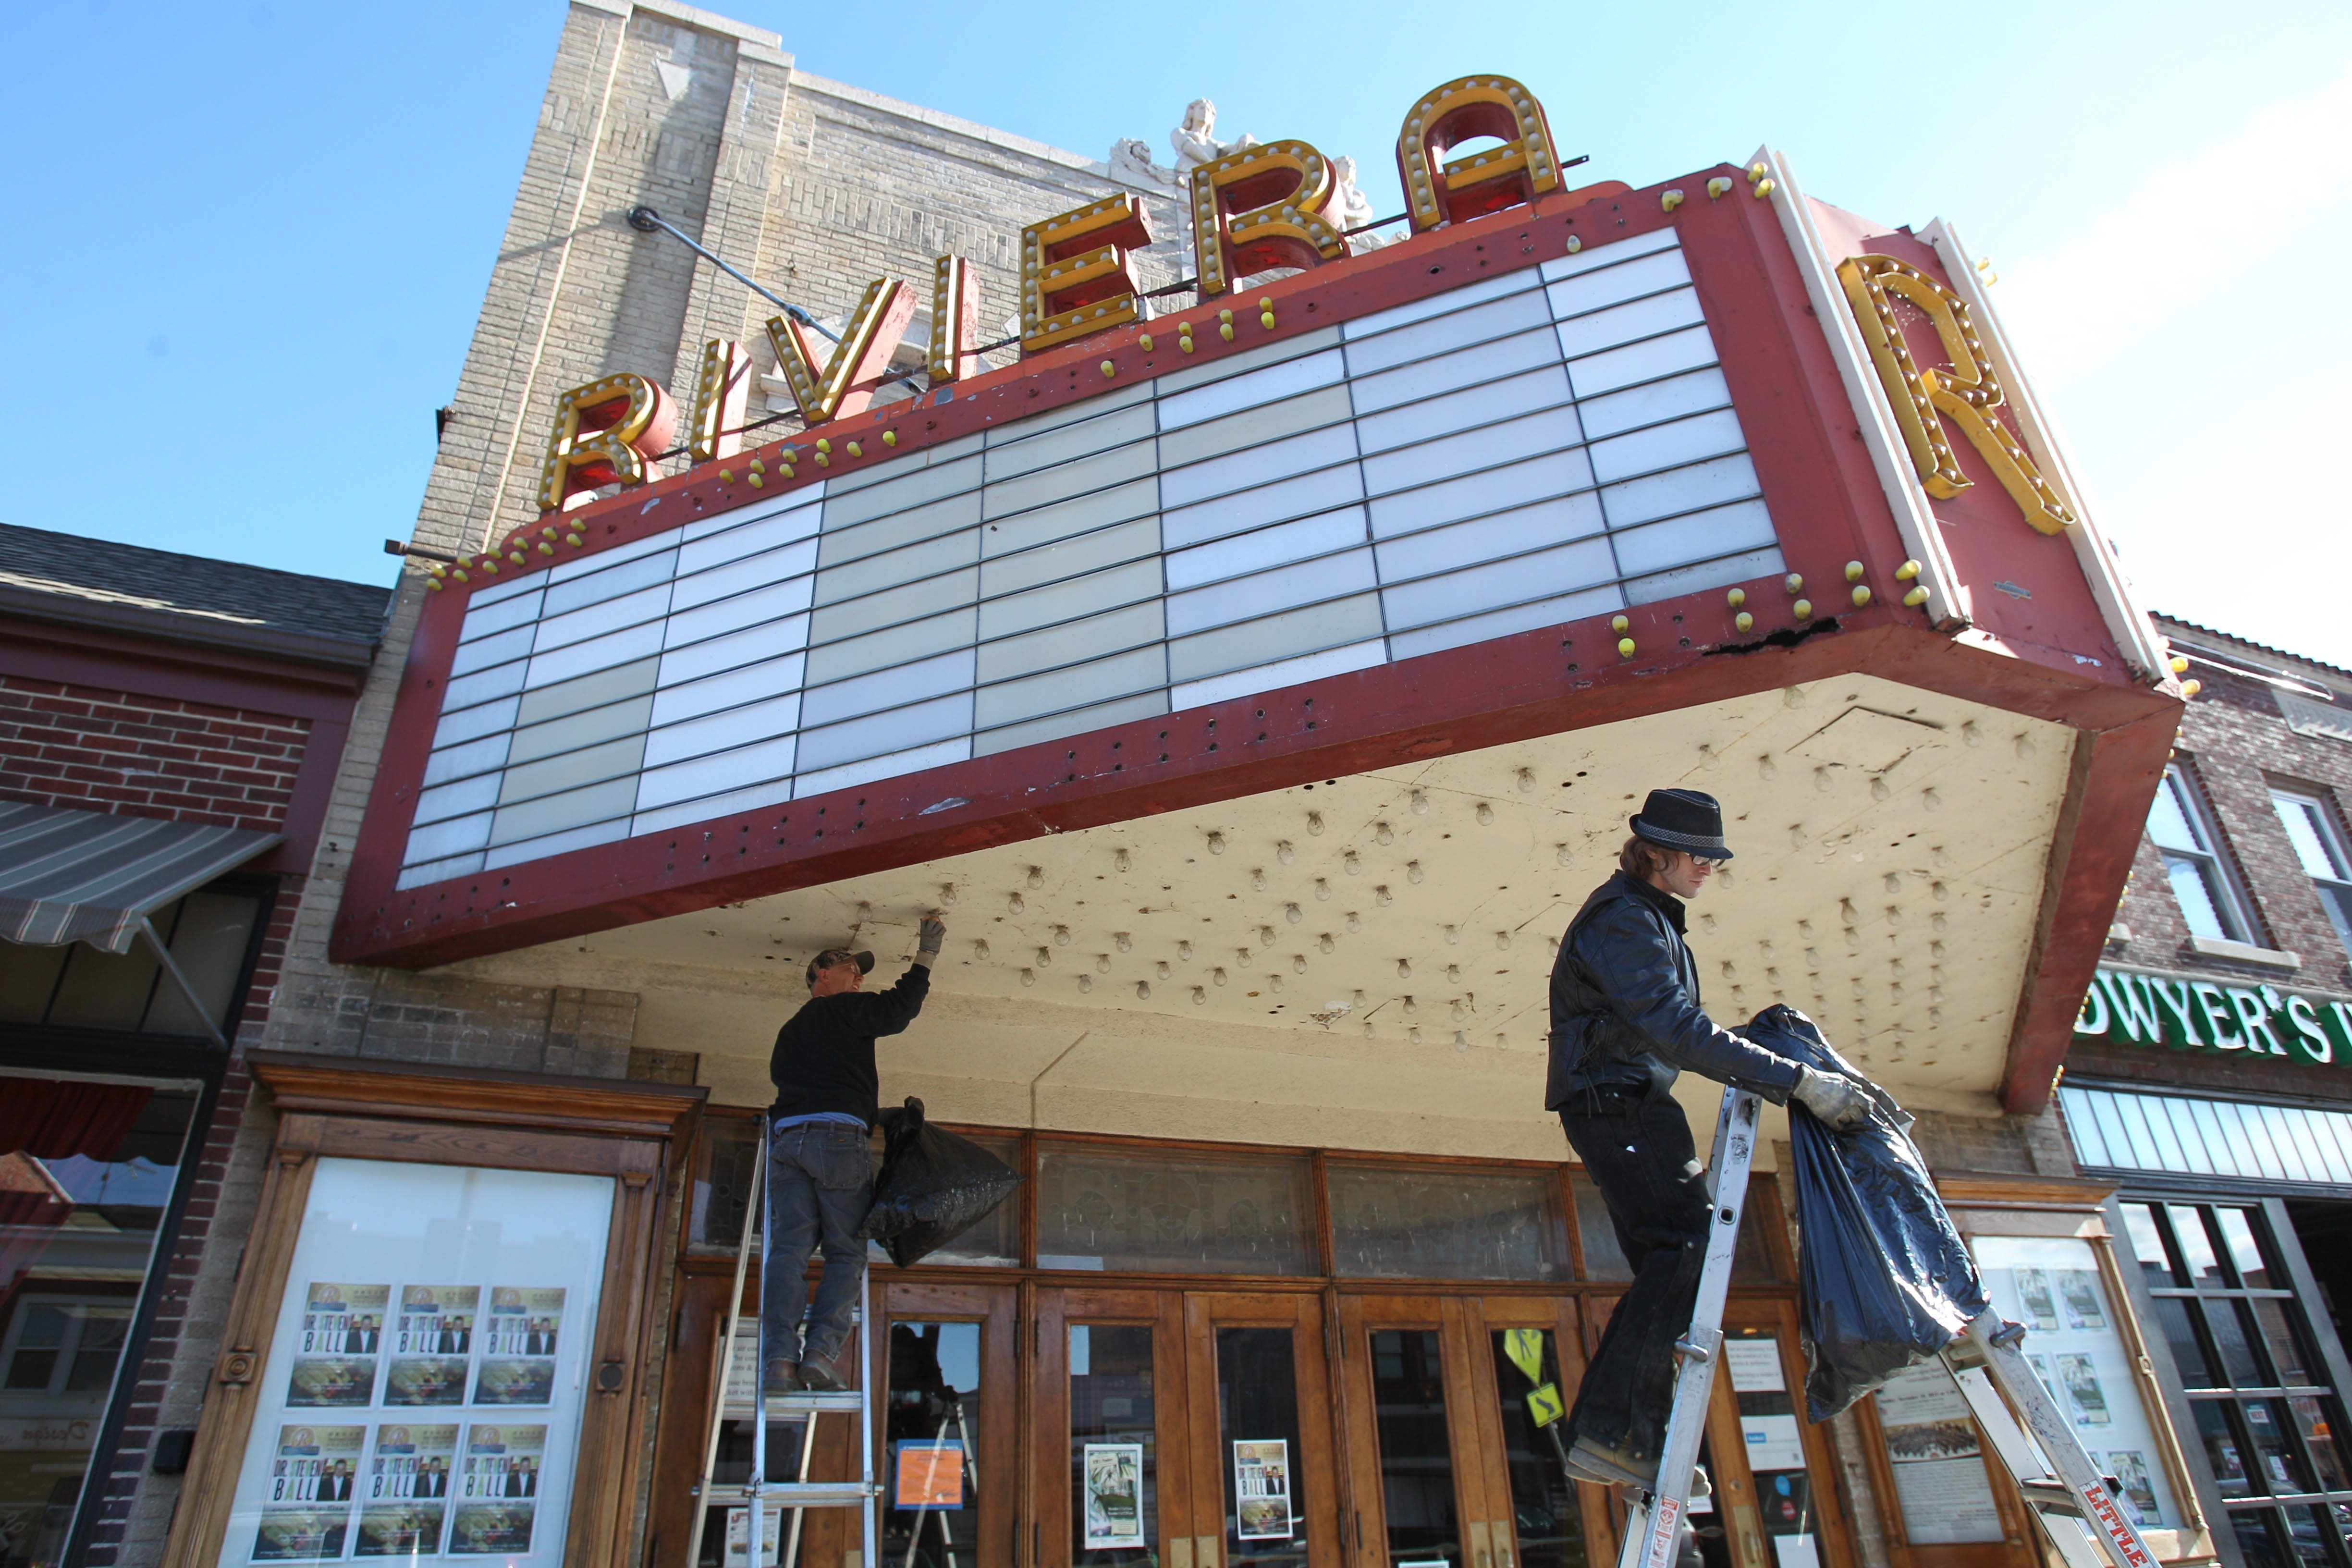 Larry Ester, left, and Joshua Nichols remove bulbs from the marquee at the Riviera Theatre in North Tonawanda on Monday. The sign is undergoing a $275,000 restoration.